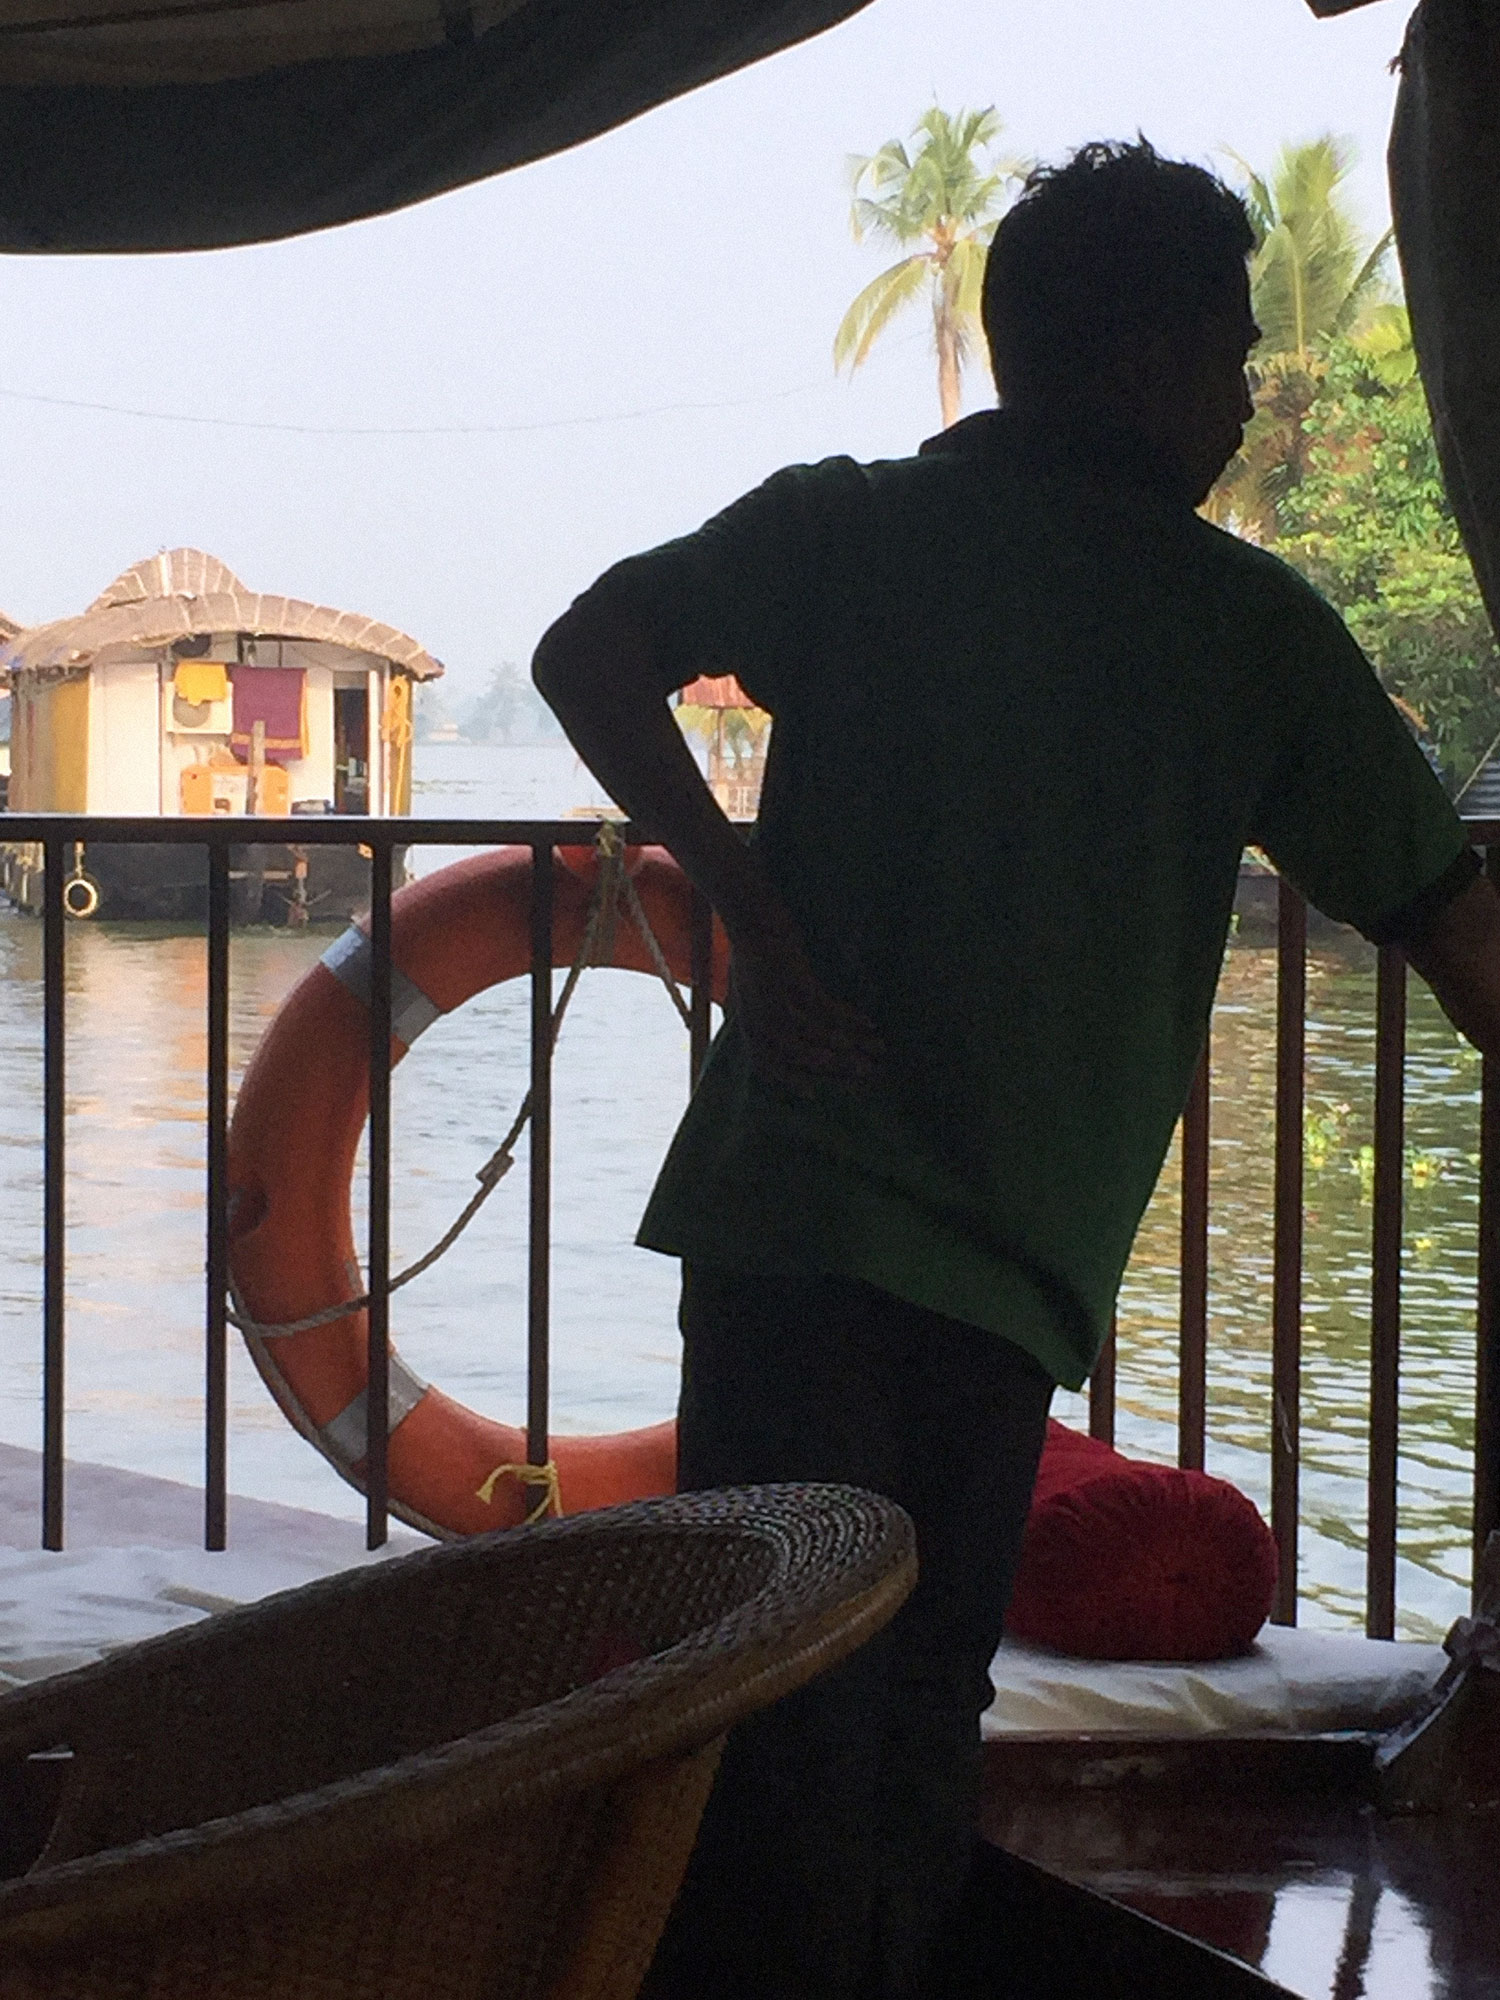 One of the three houseboat crew members.